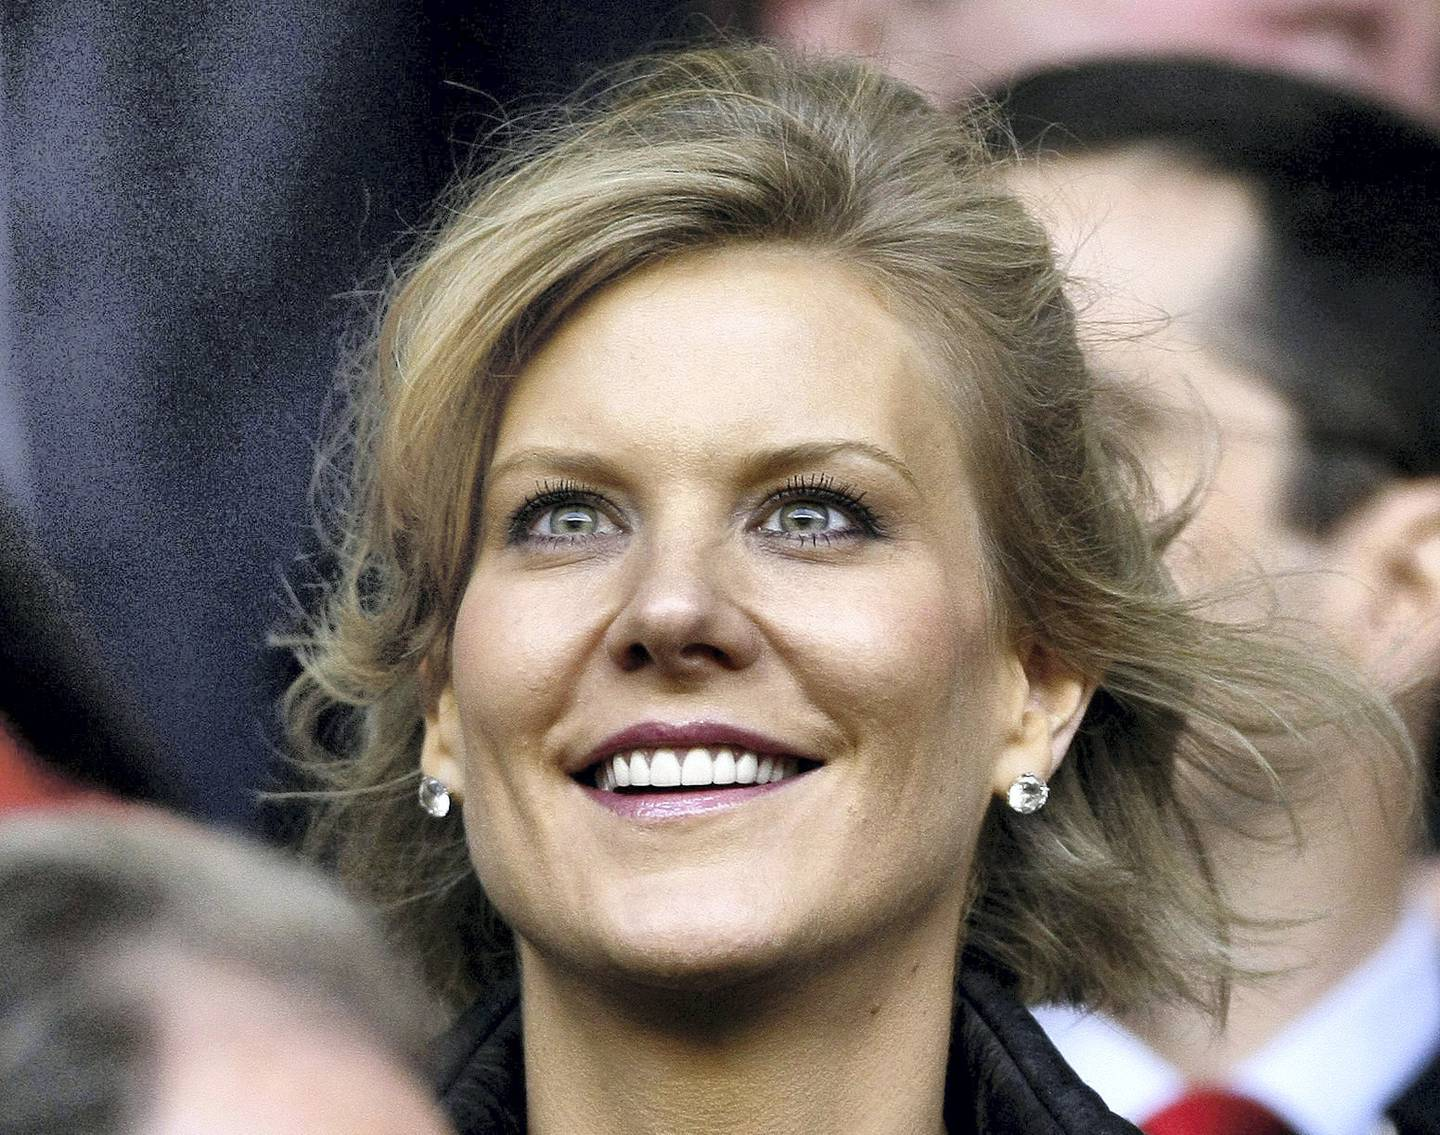 Dubai International Capital's chief negotiator Amanda Staveley smiles before the Champions League semi-final first leg soccer match between Liverpool and Chelsea at Anfield in Liverpool, northern England, April 22, 2008. REUTERS/Phil Noble/File Photo - S1AETKHIQSAA